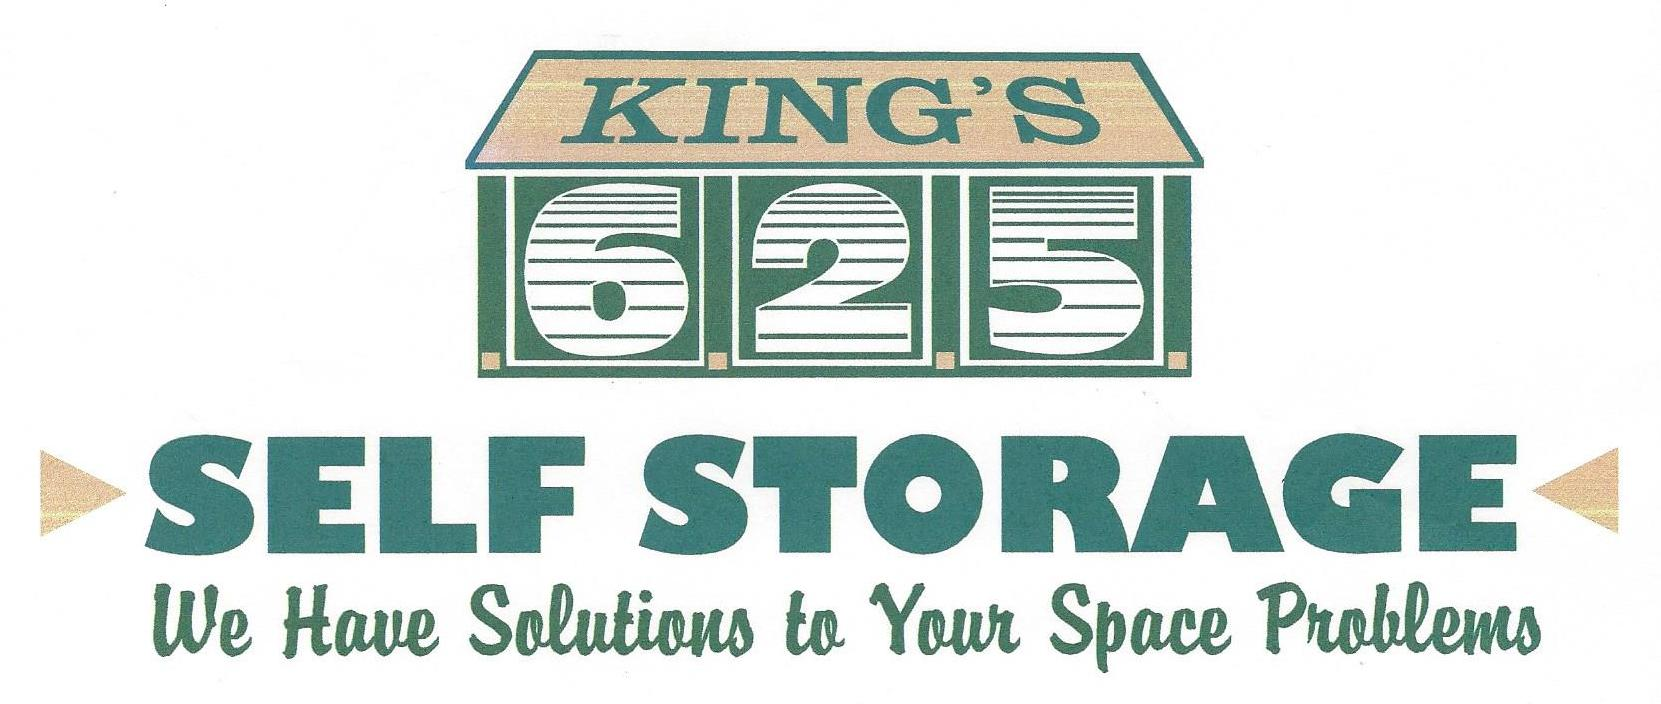 King's 625 Self Storage